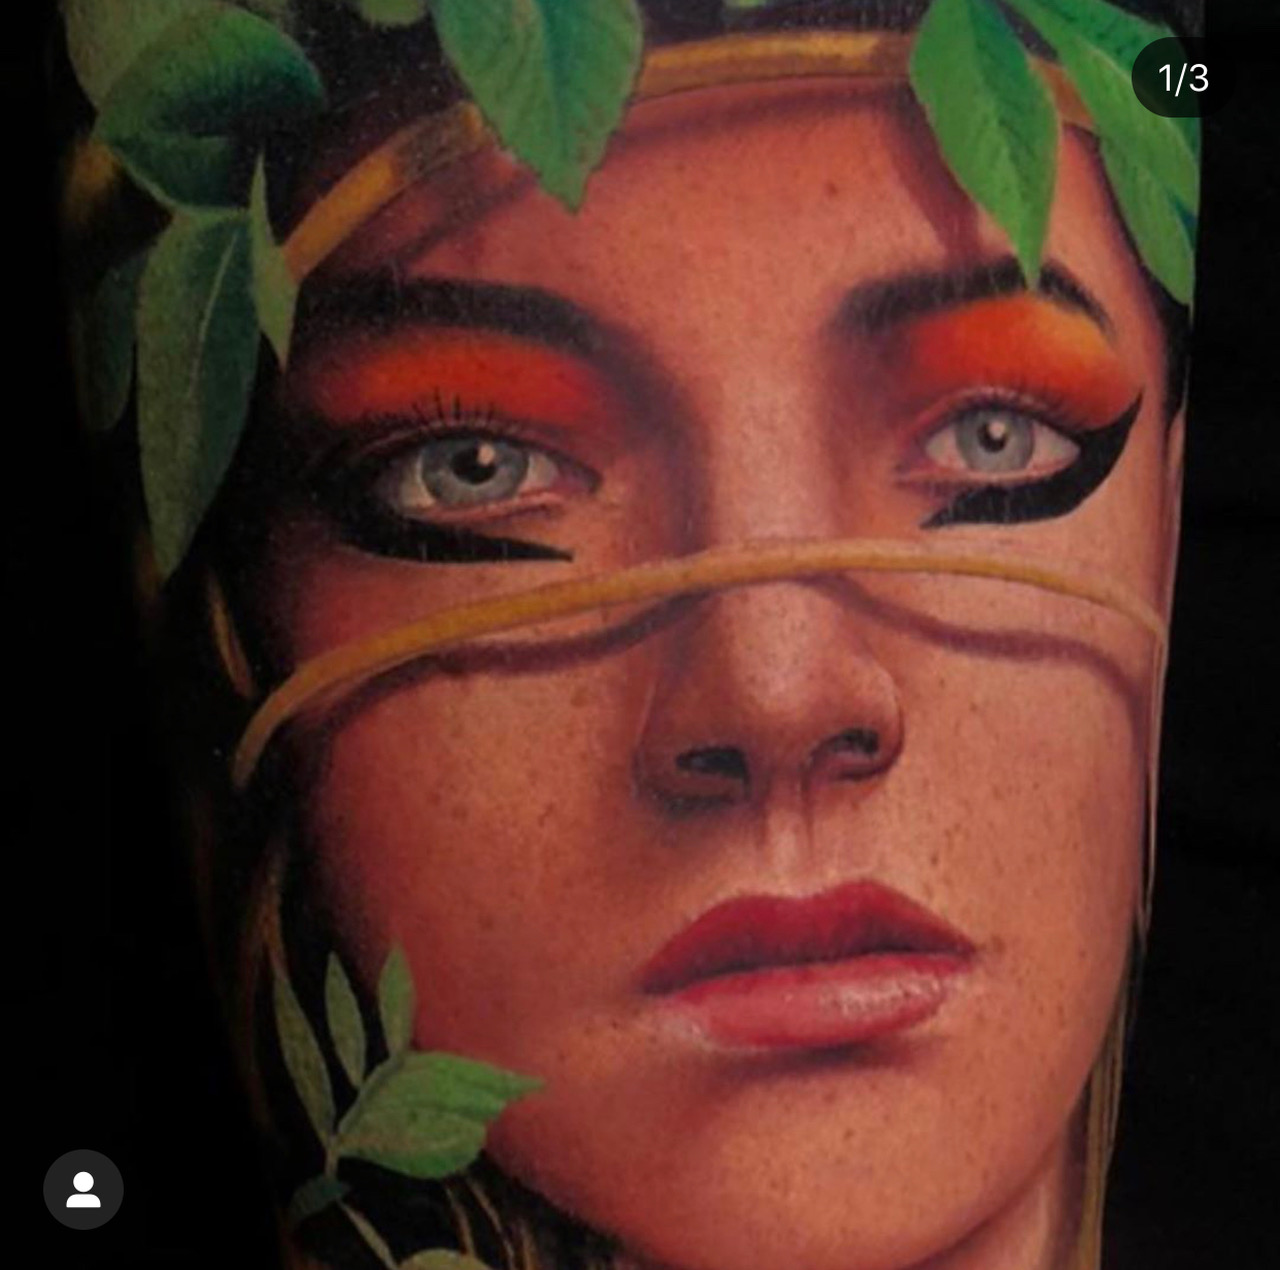 woman as part of a tattoo sleeve joe tattoo anansi münchen munich artist best bester bestes tätowierer